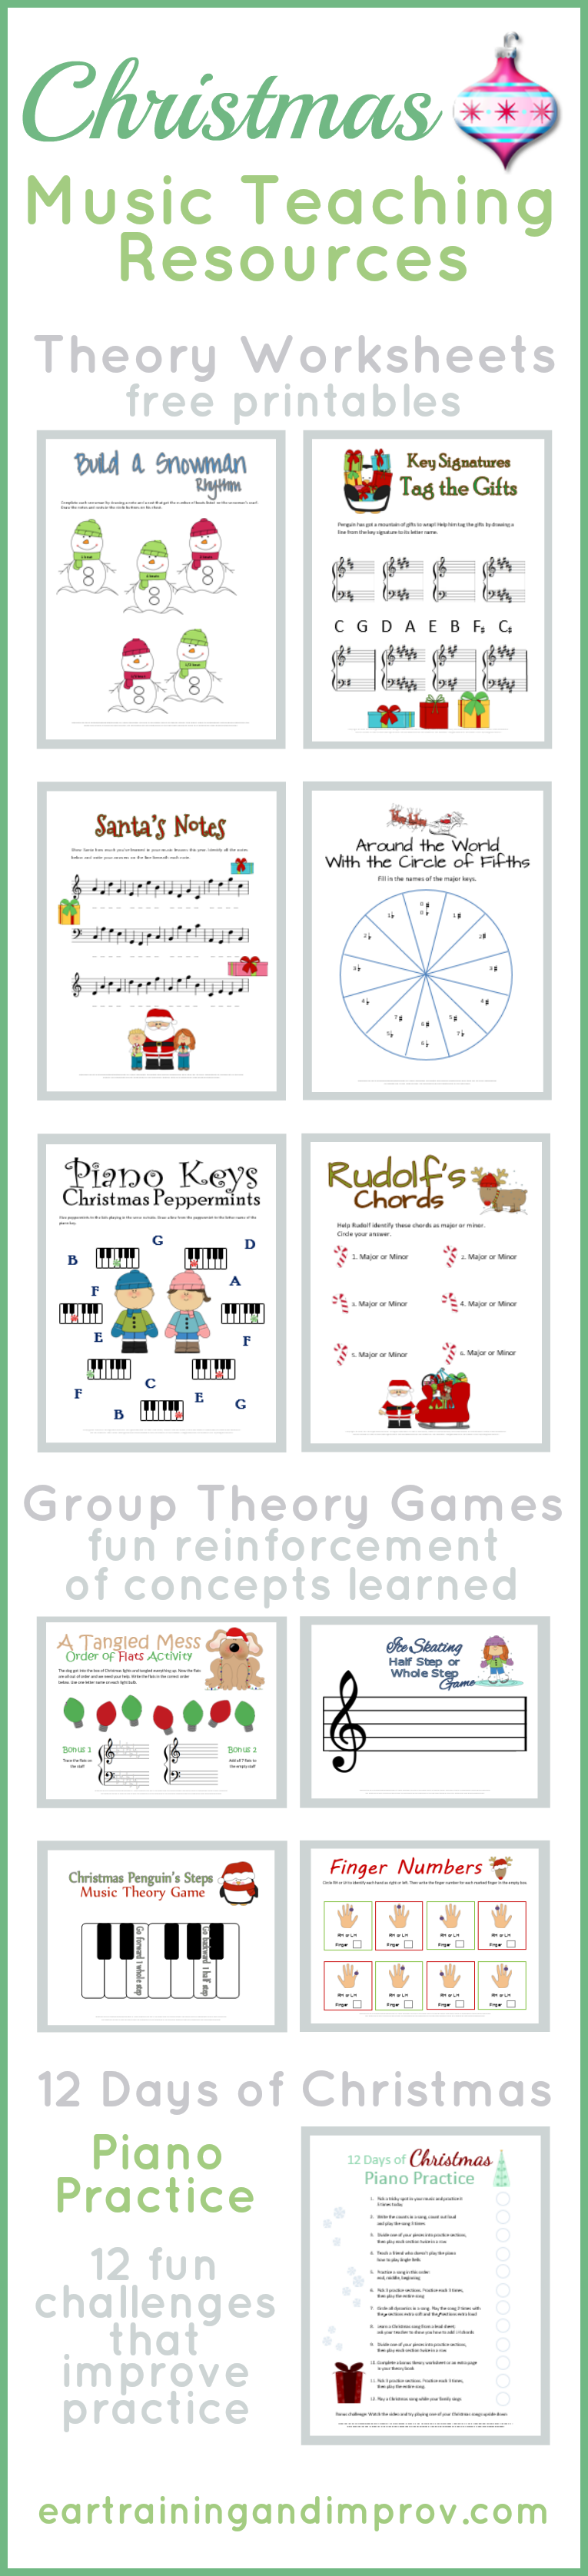 Christmas Music Theory Worksheets 20 Free Printables – Christmas Worksheets Free